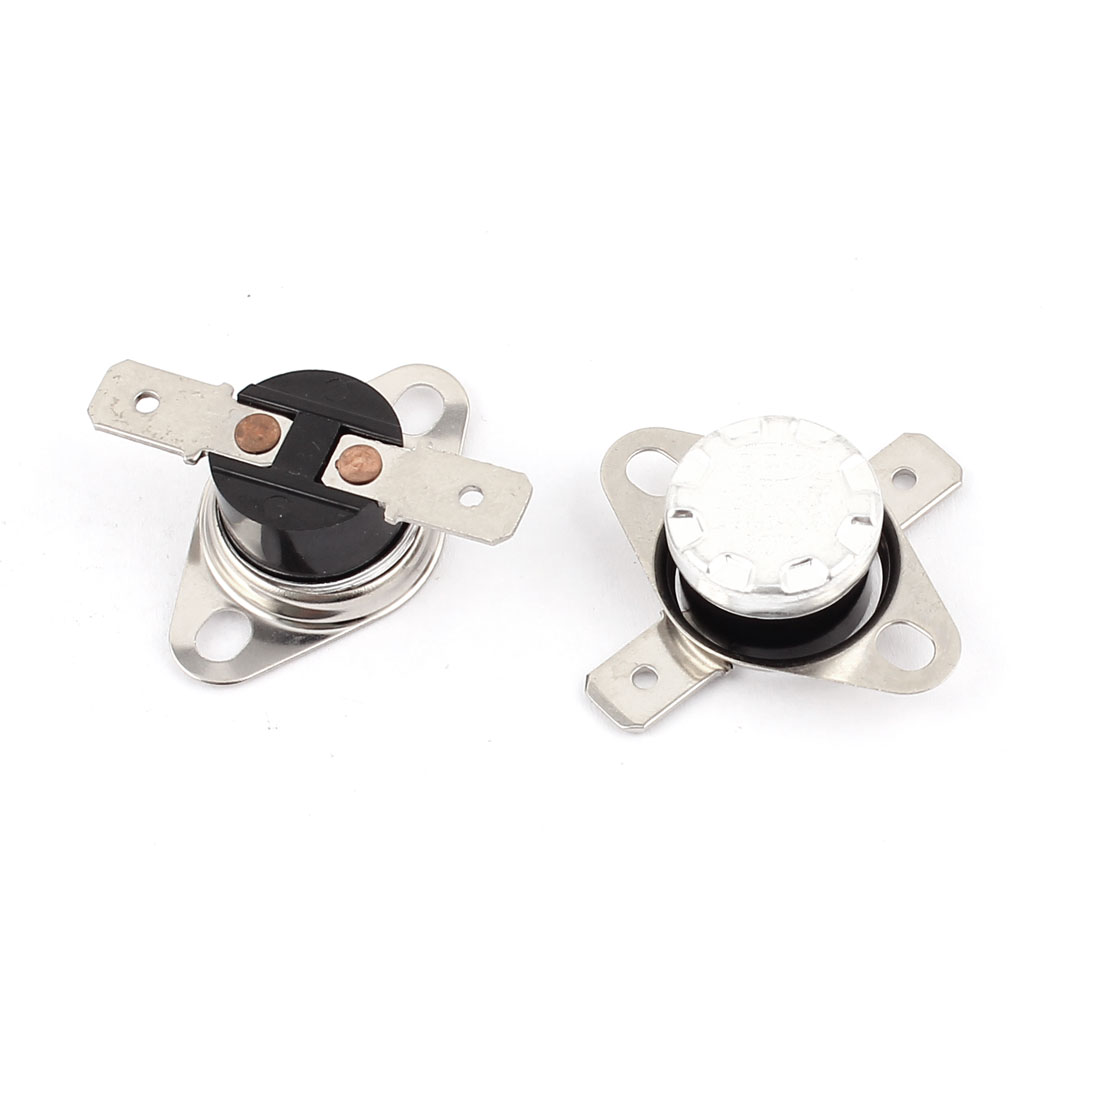 2 Pcs KSD301 Temperature Control Switch Thermostat 250V 10A 50 Celsius N.O.